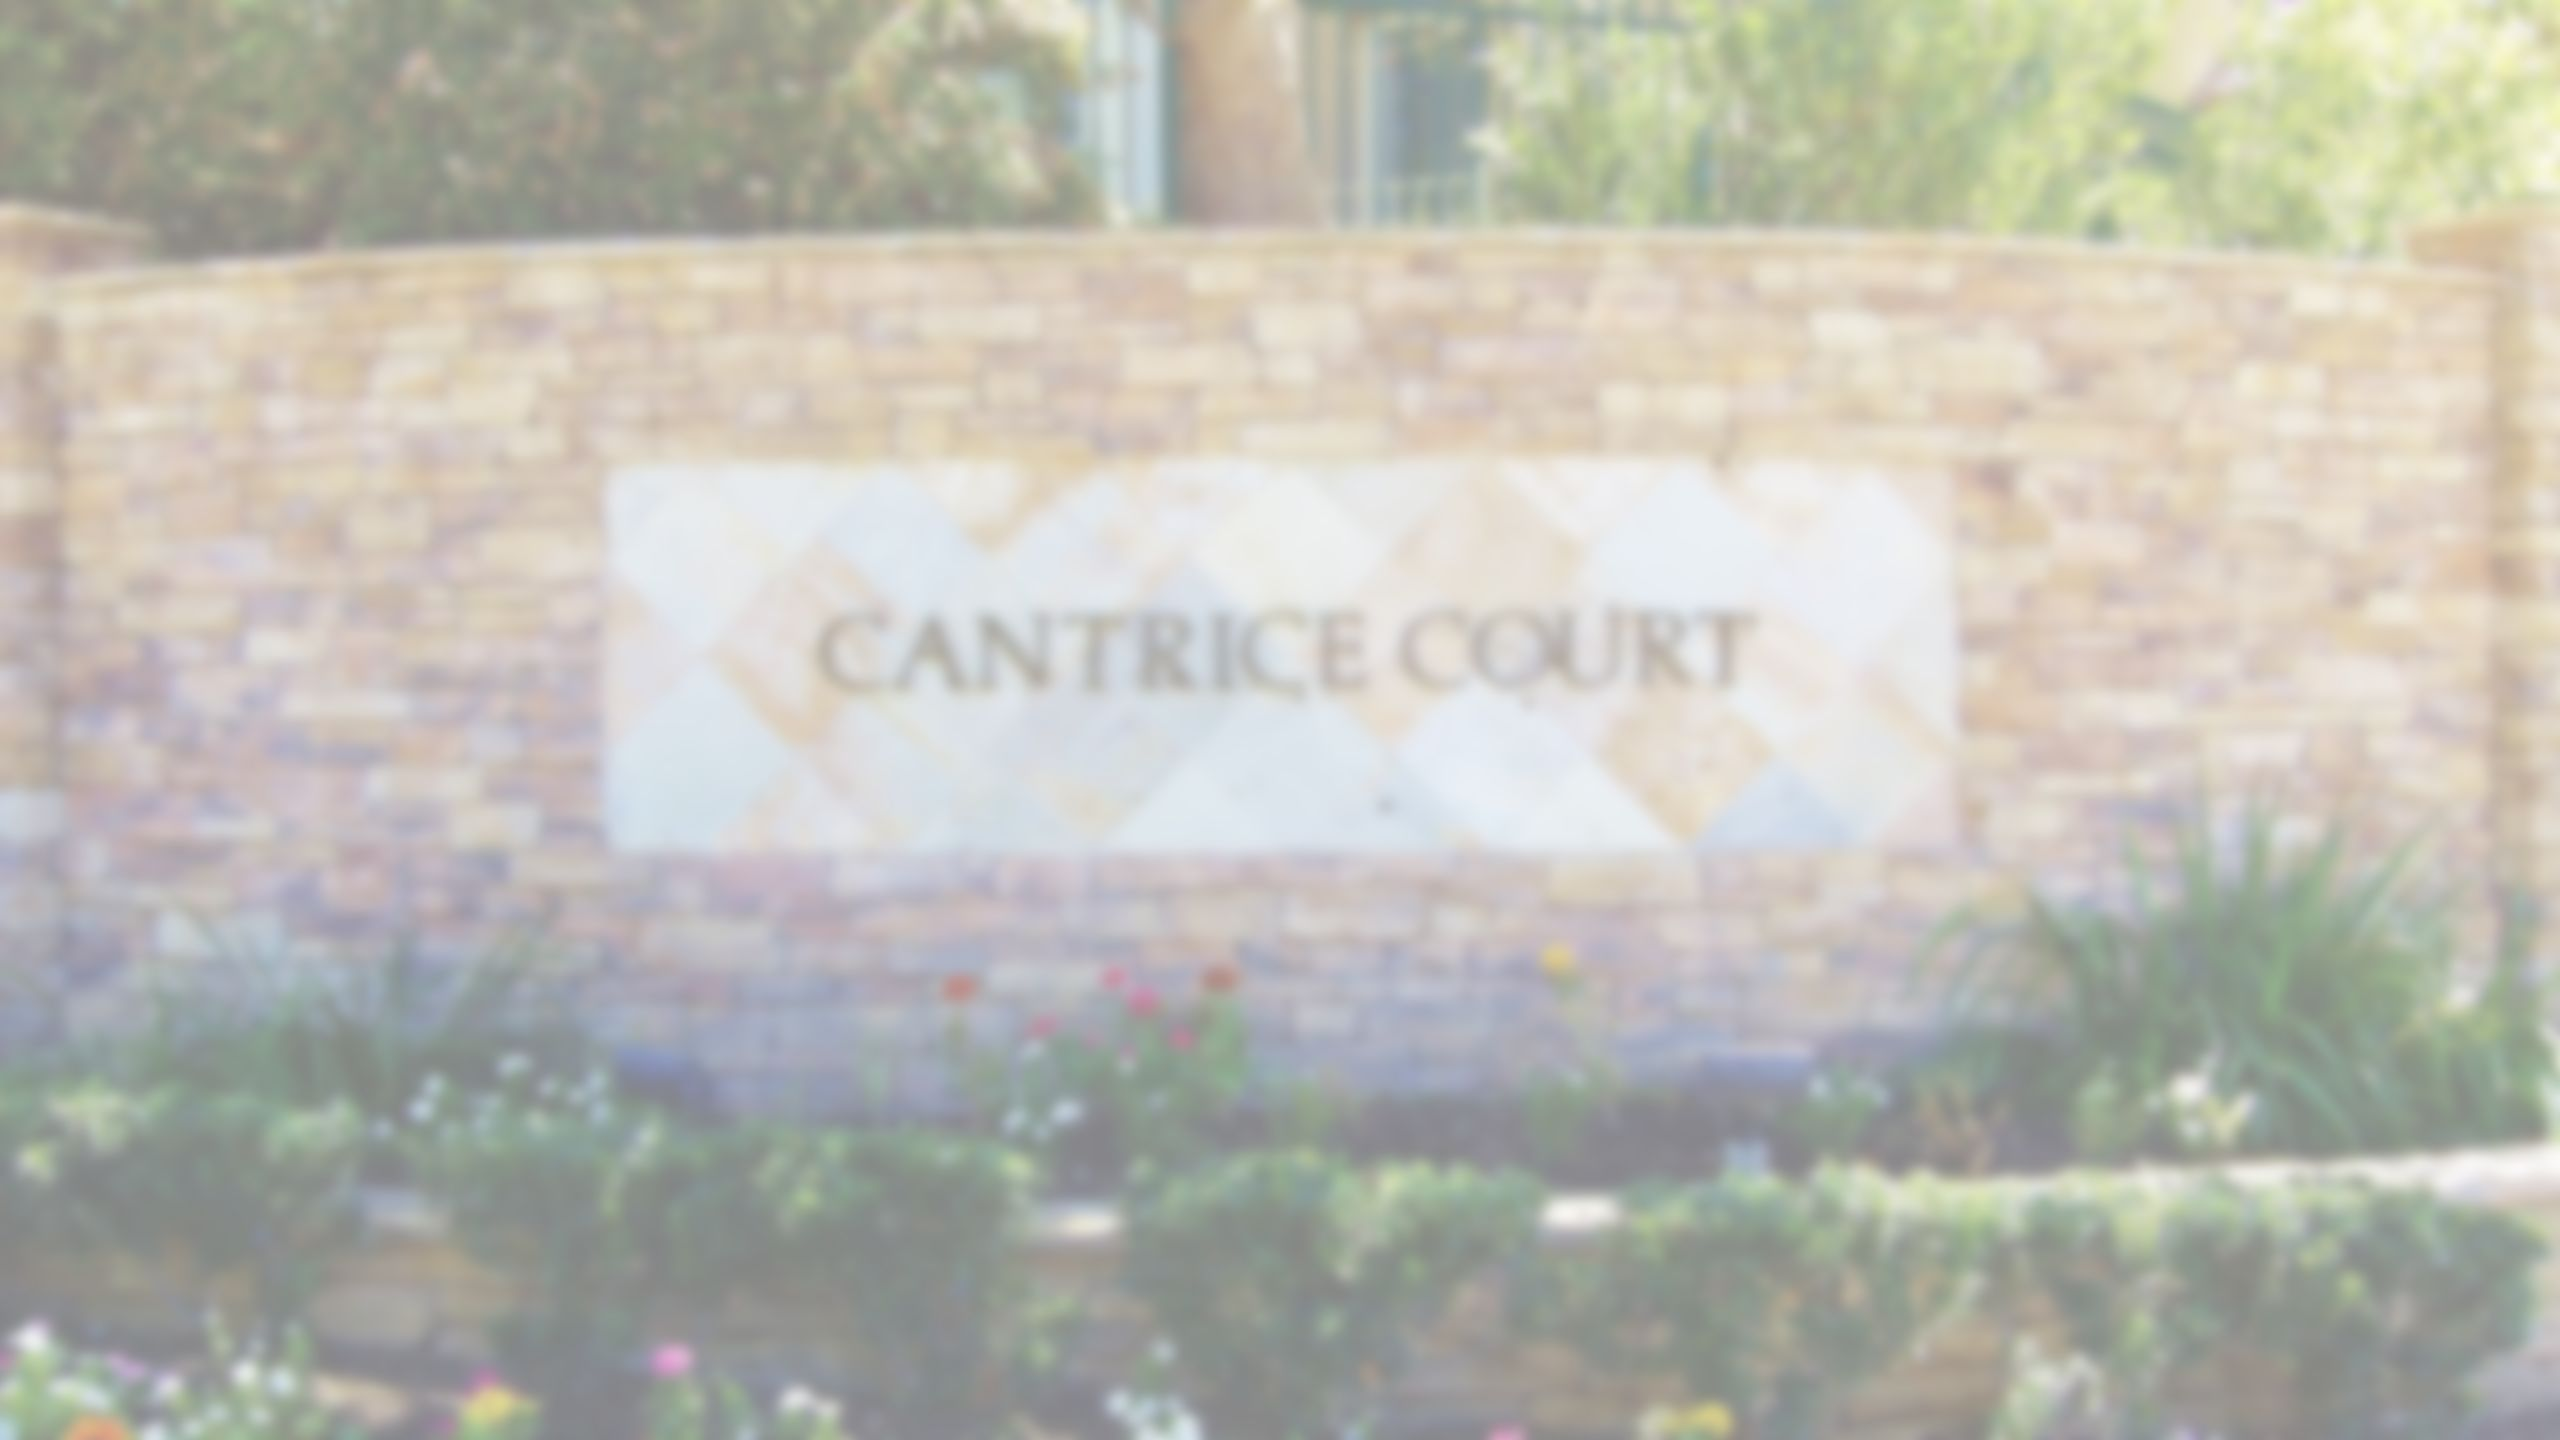 Cantrice Court – Wood Ranch